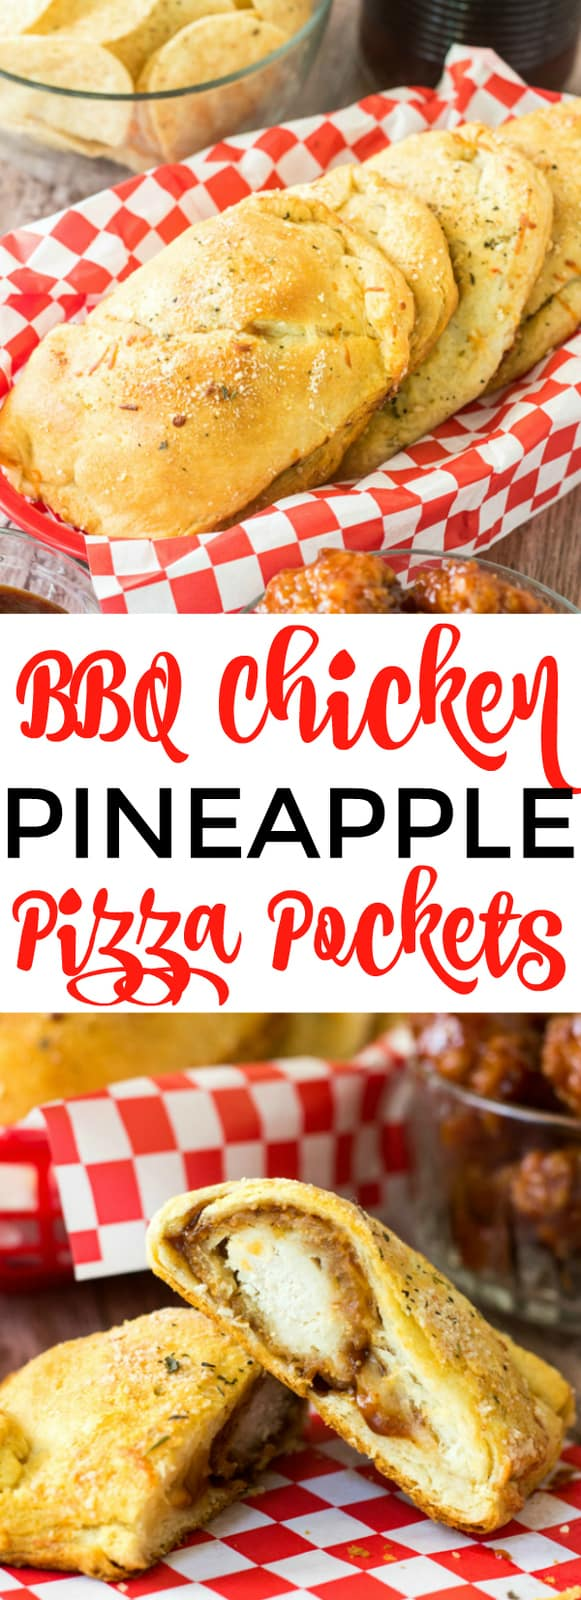 BBQ Chicken Pineapple Pizza Pockets collage with words in center